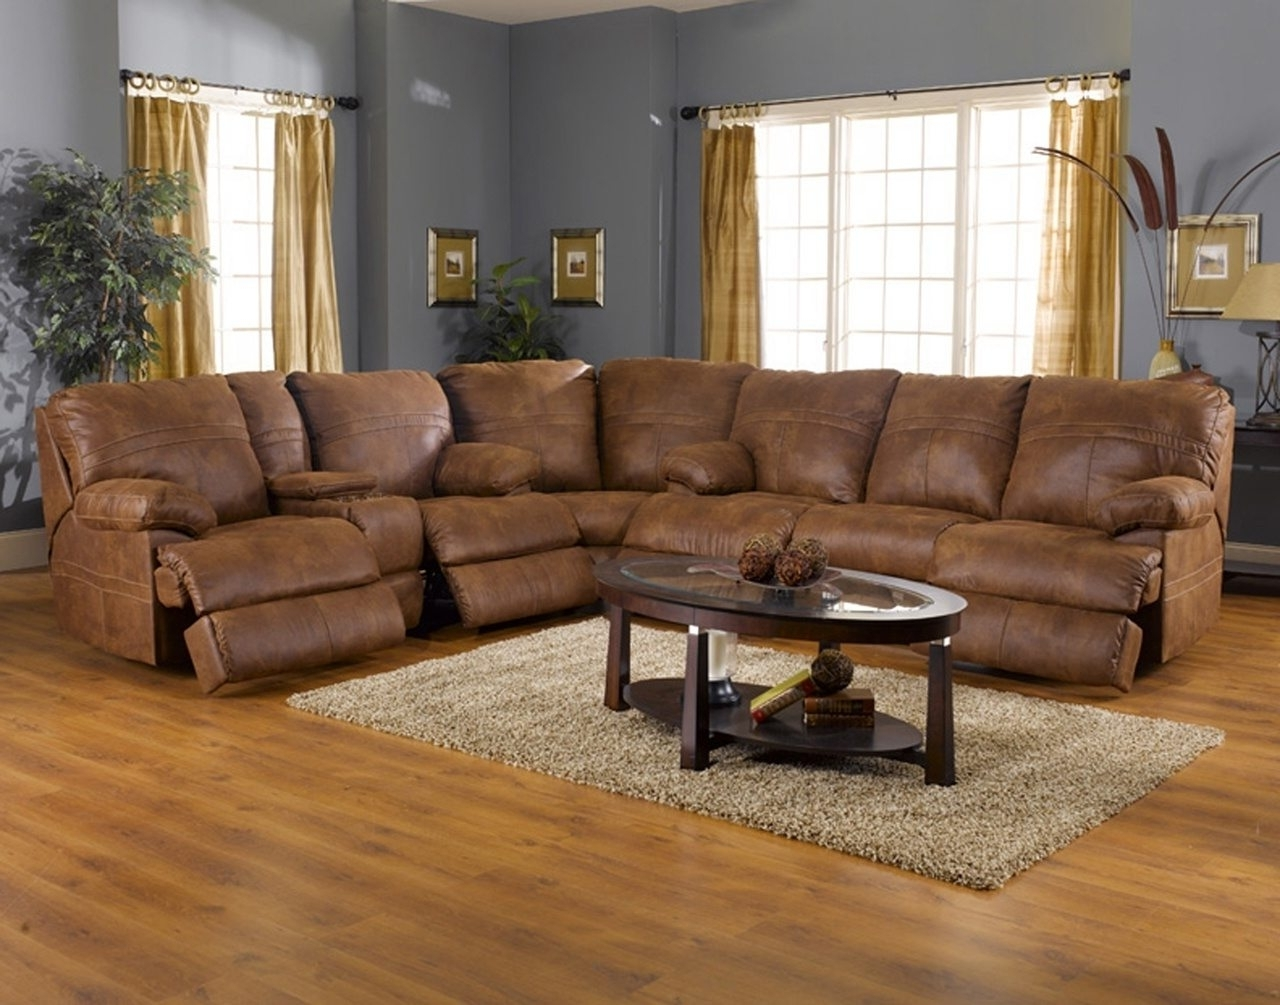 L Shaped Light Brown Leather Reclining Sectional With Oval Coffee Regarding Famous Leather Recliner Sectional Sofas (View 9 of 20)